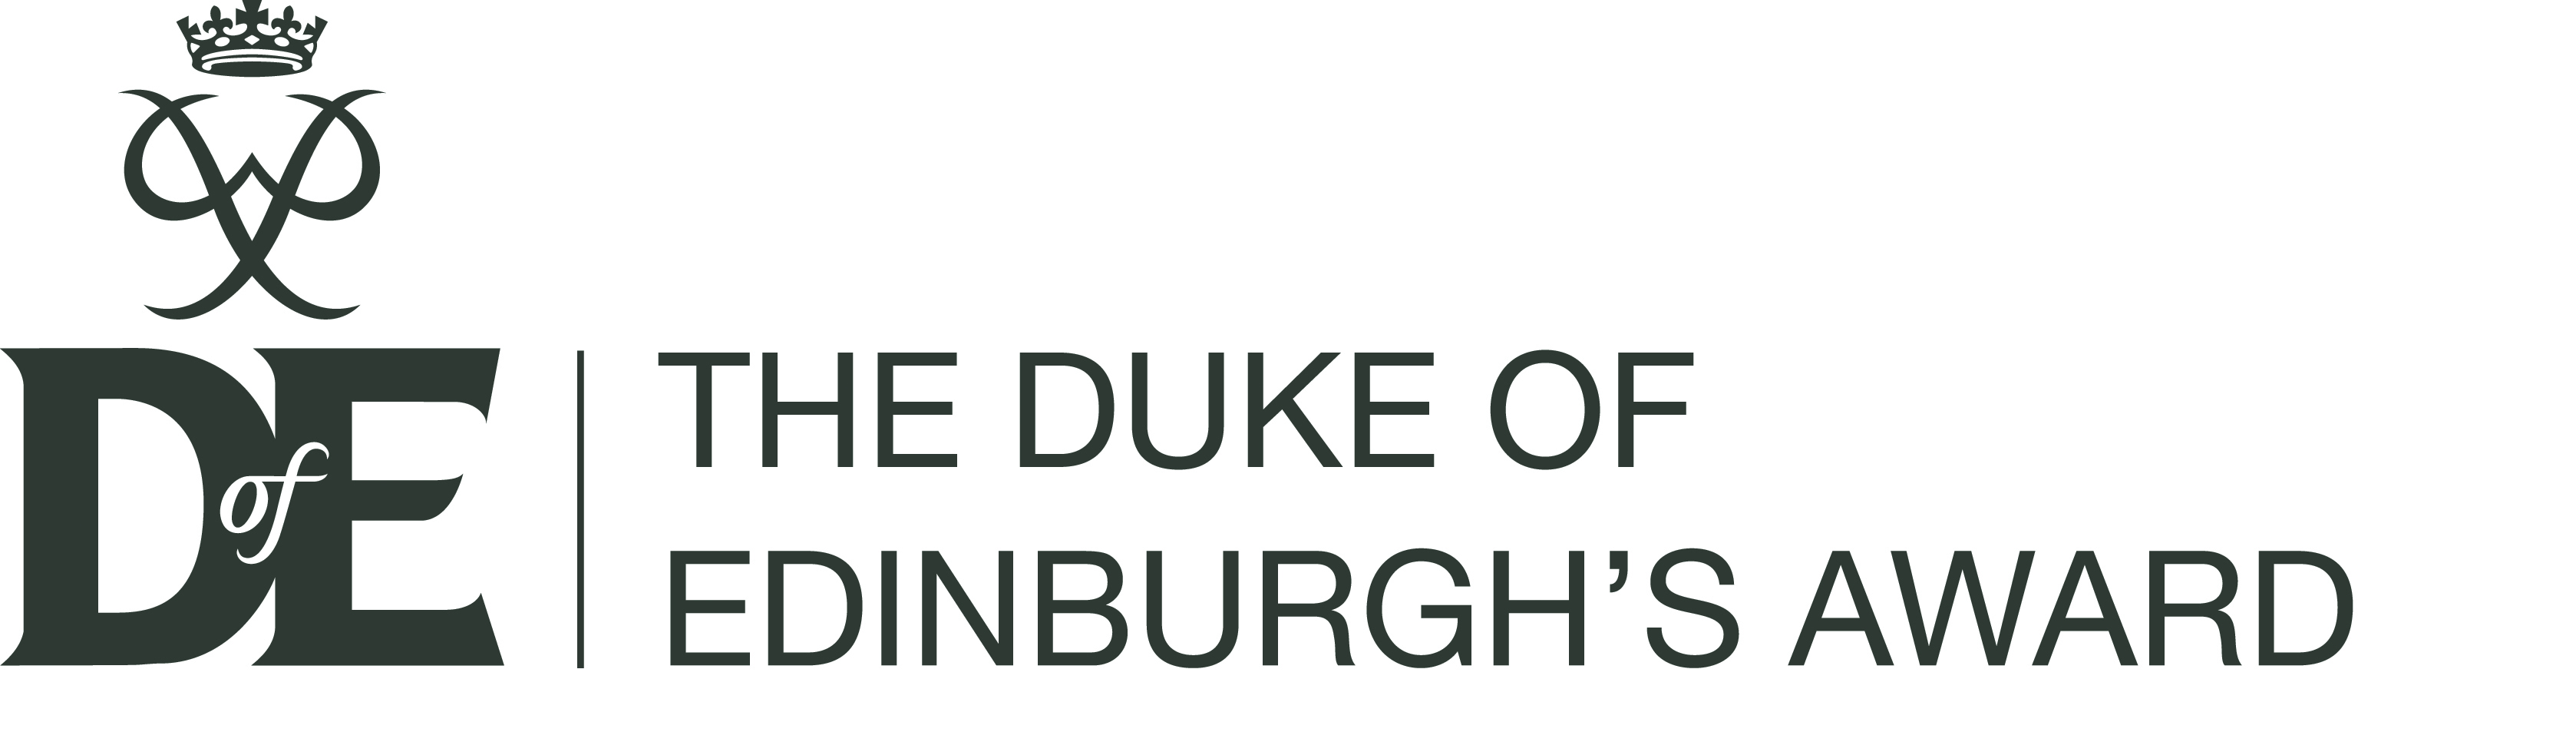 Image result for duke of edinburgh's award logo